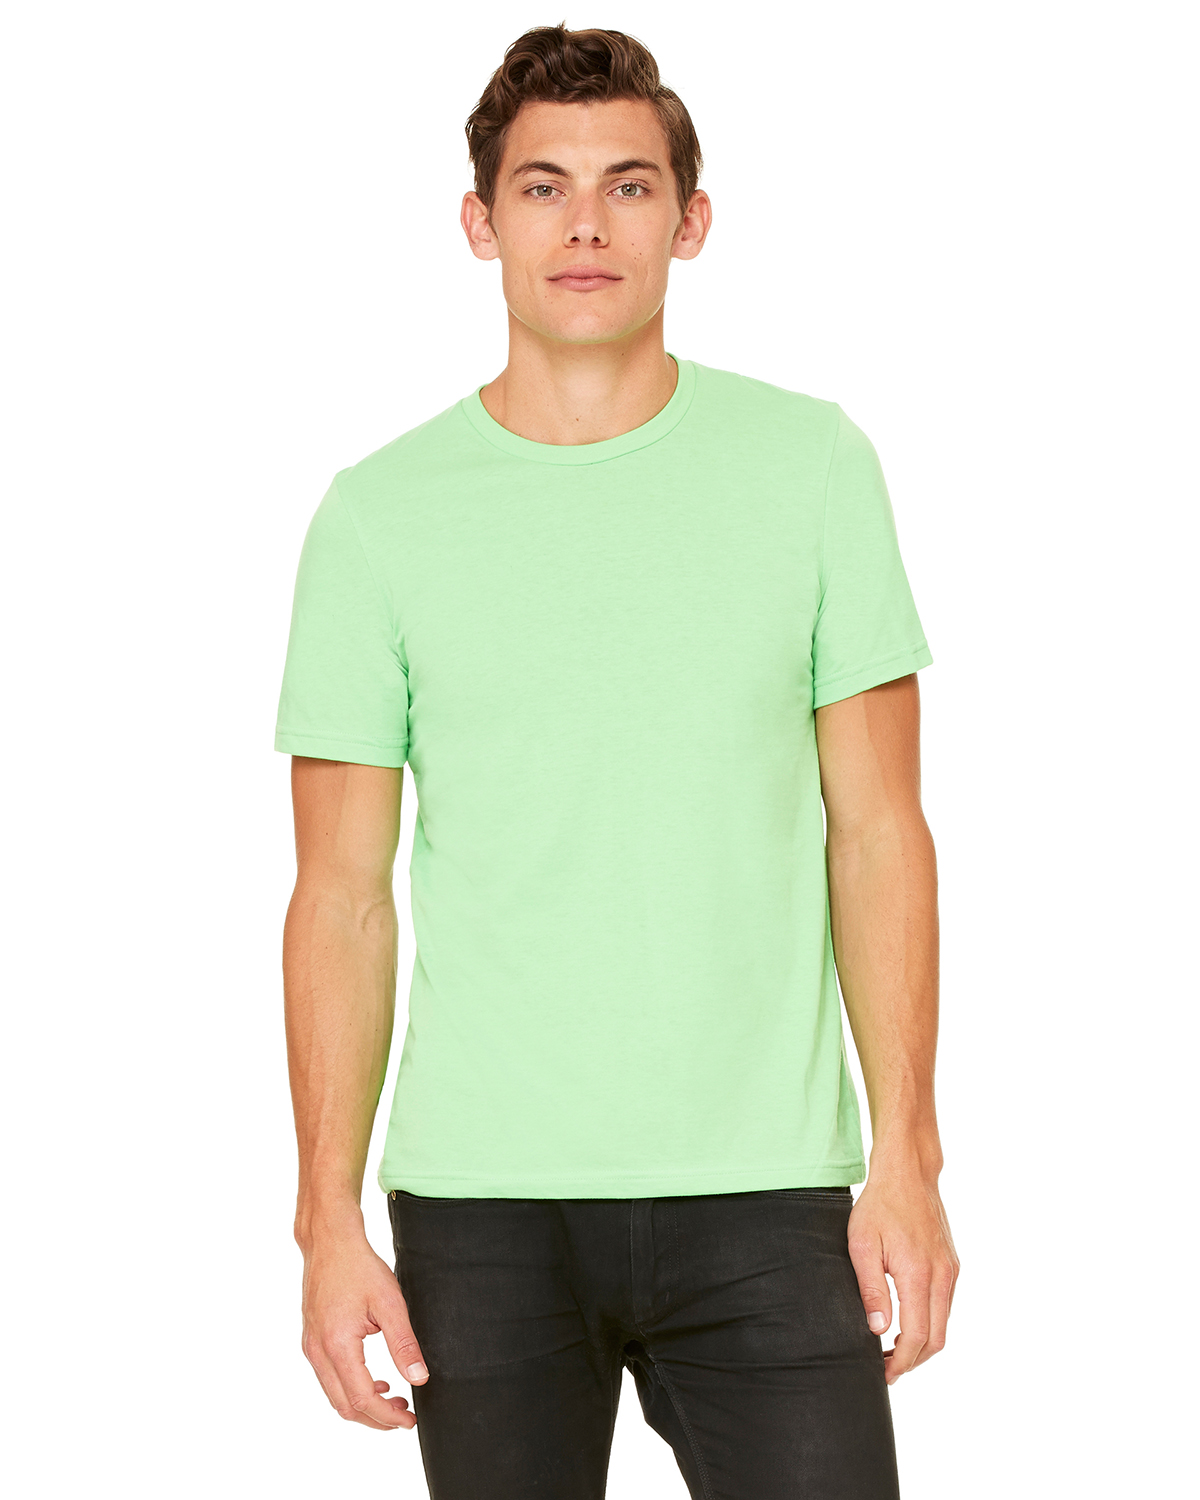 click to view NeonGreen